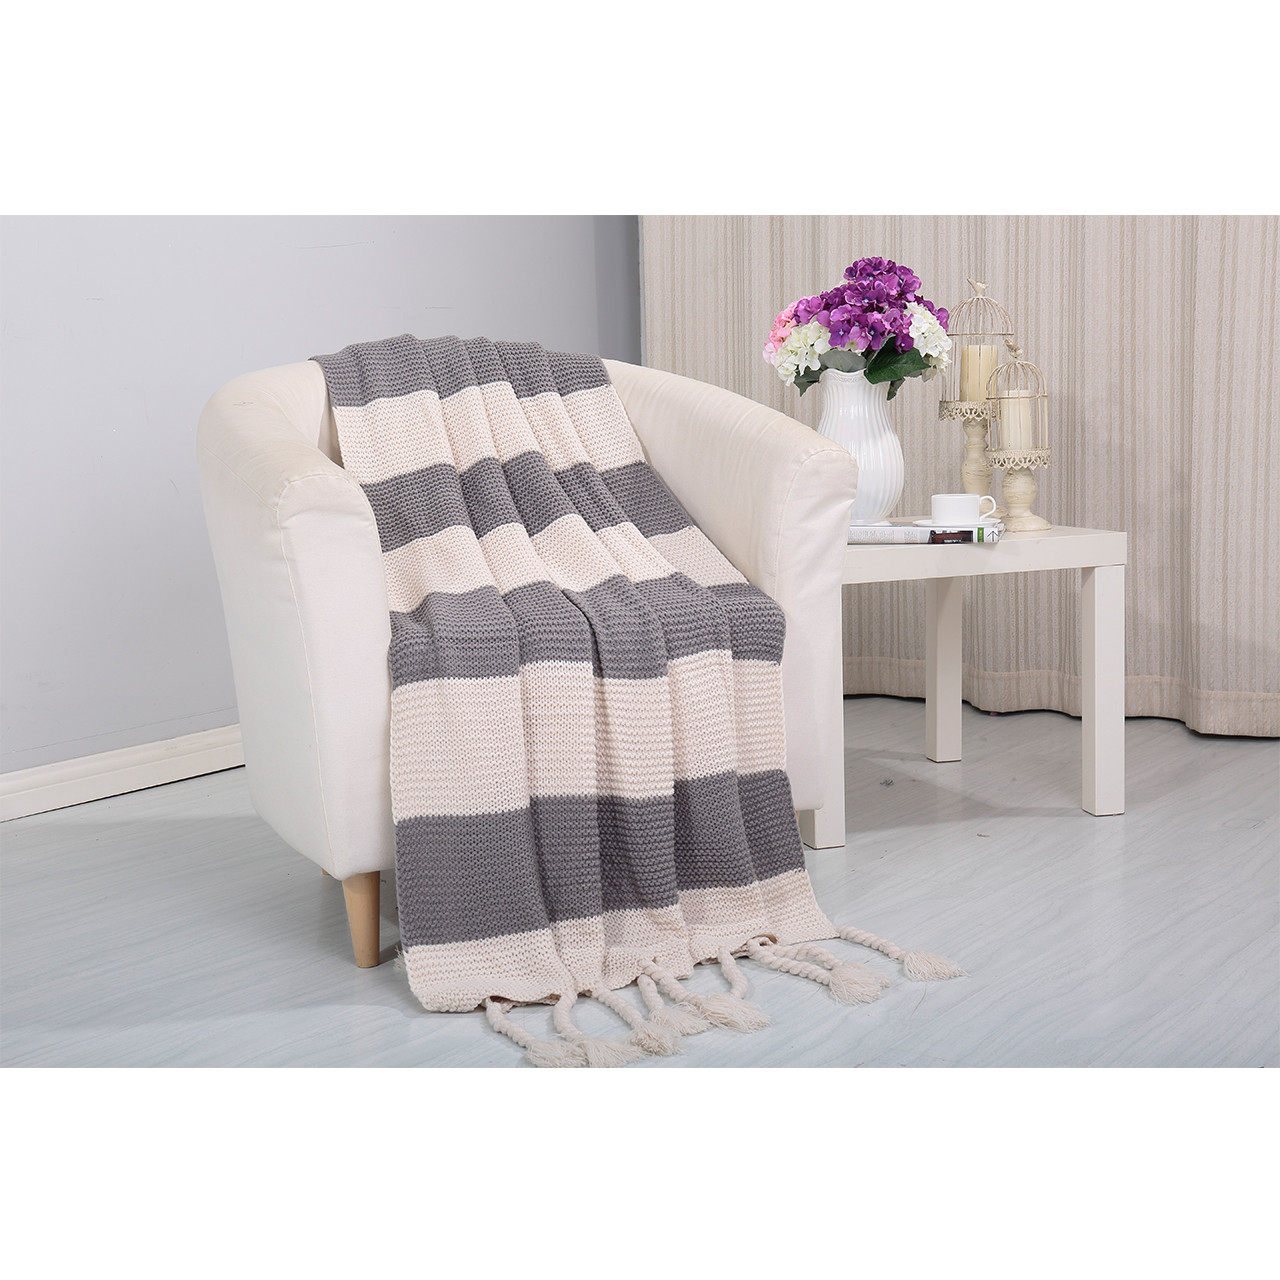 Sofa Throws Knitted Vintage Knitted Throw Couch Cover Sofa Blanket 50x60